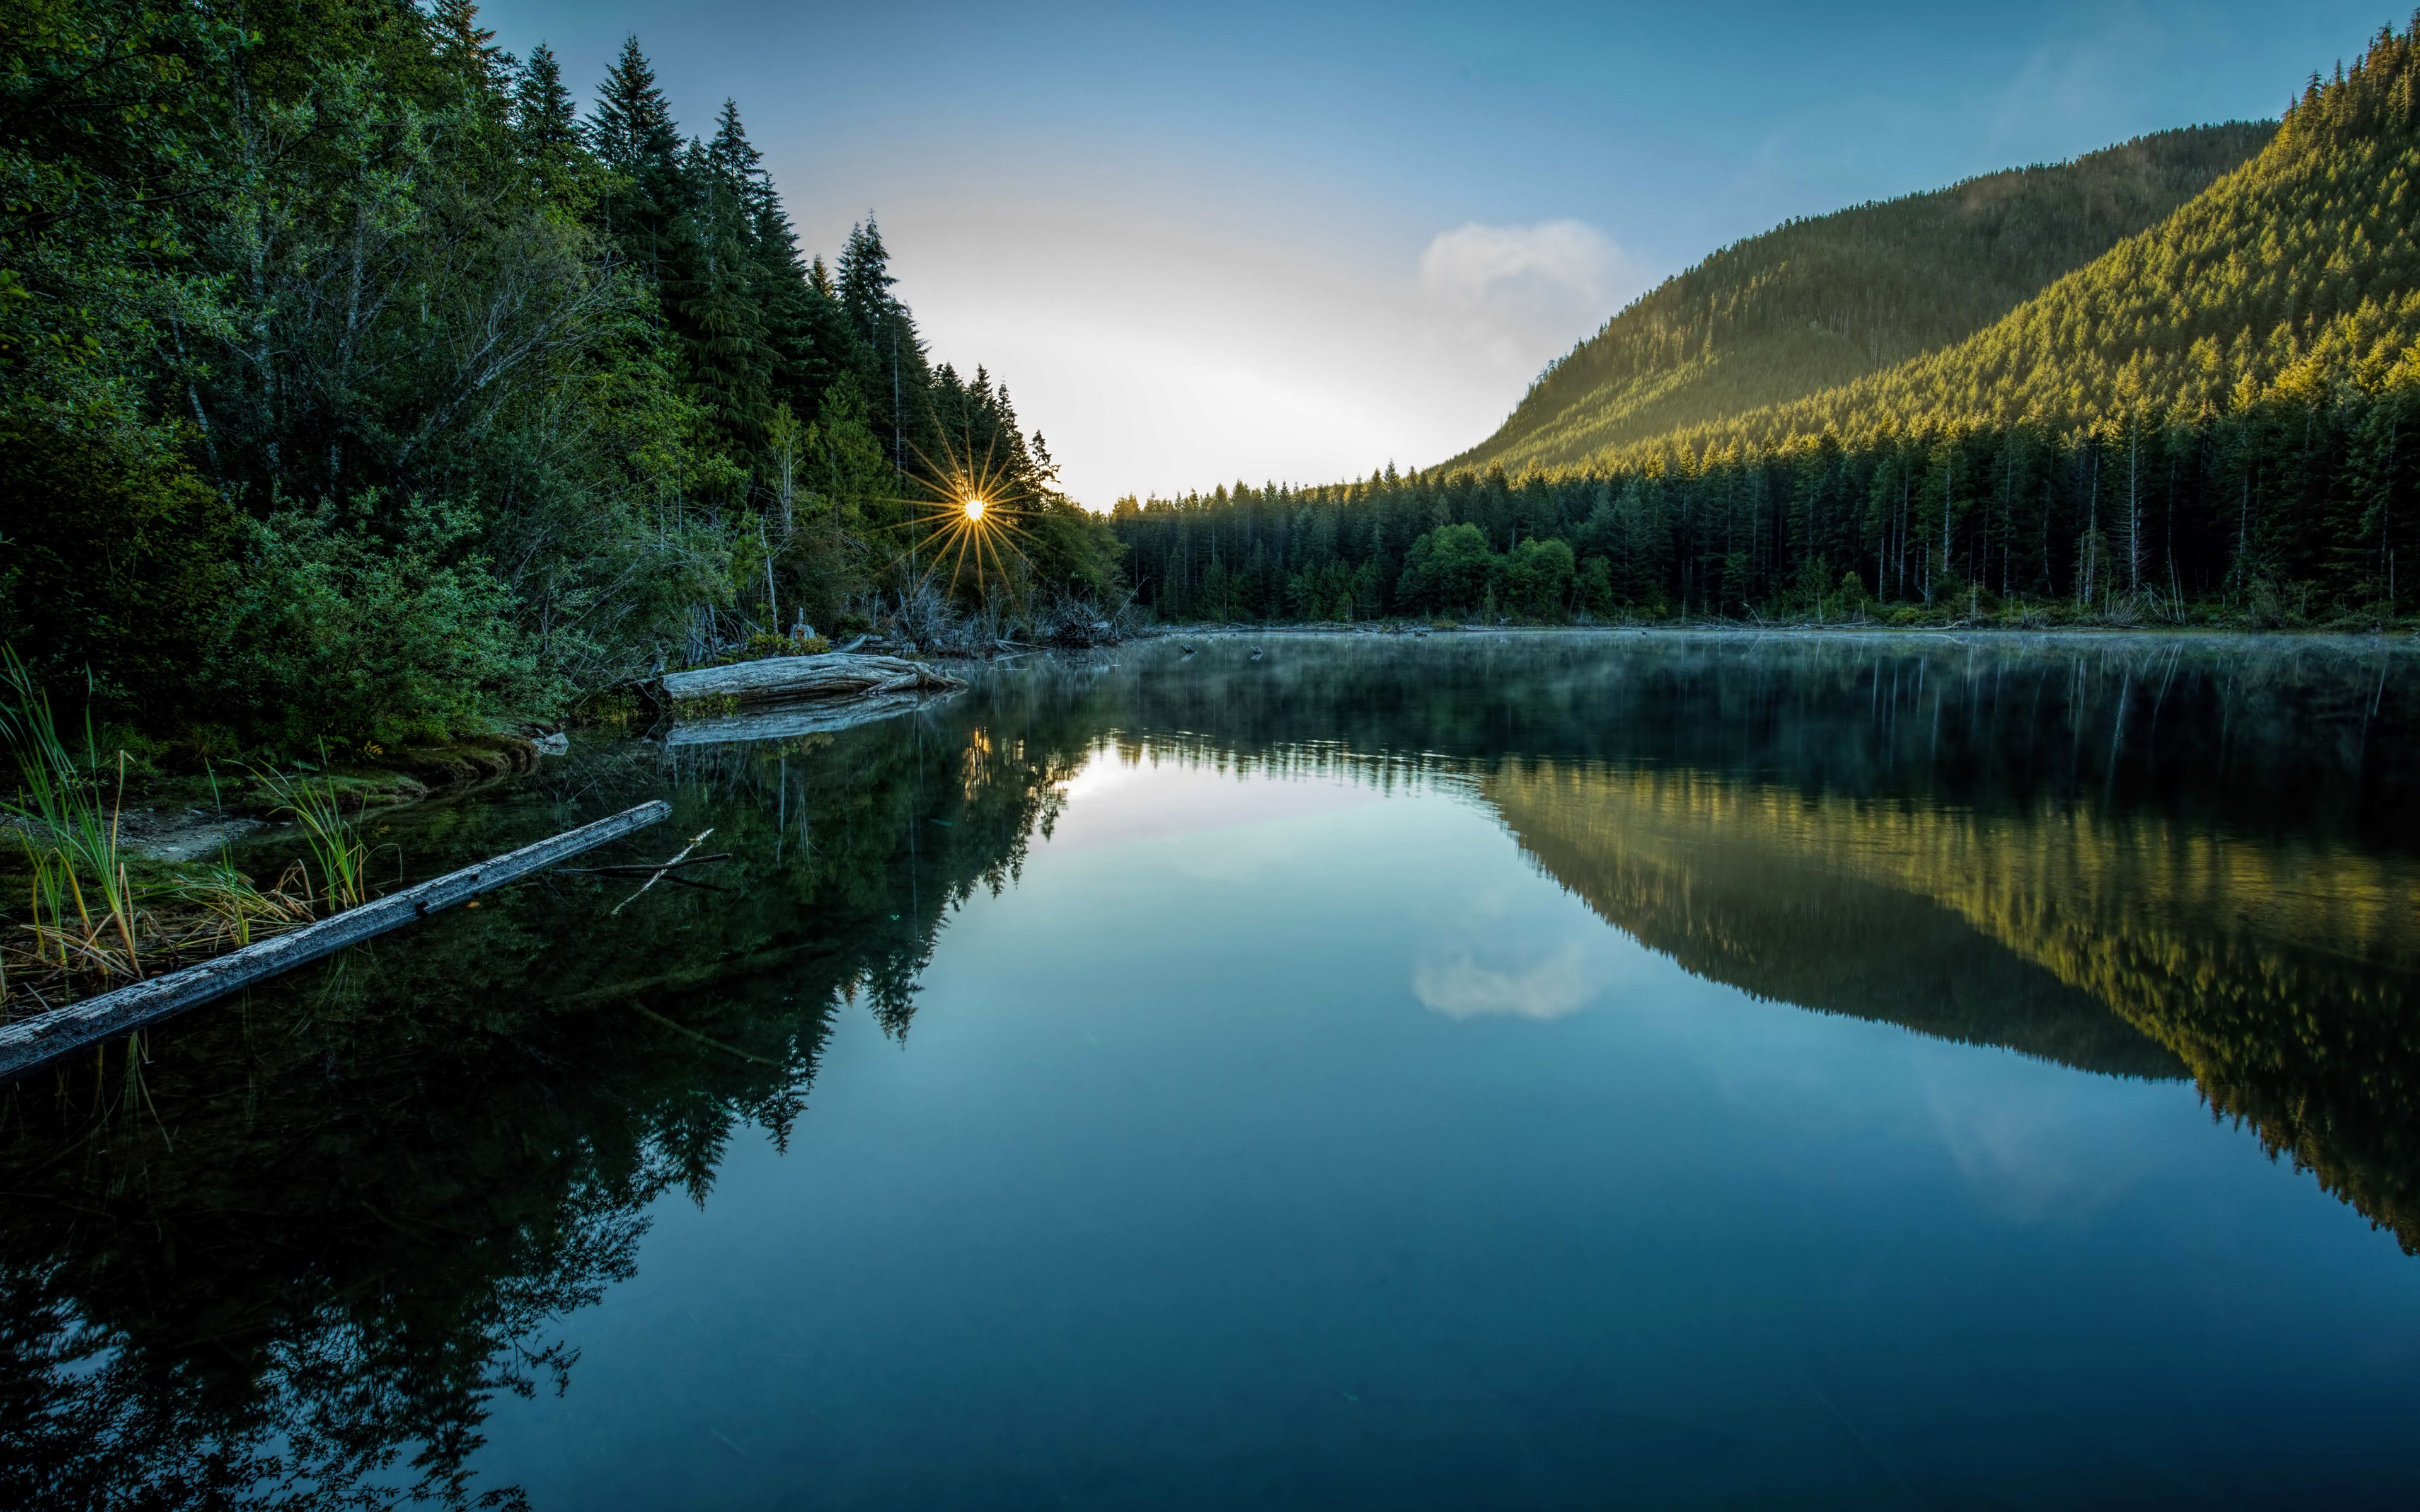 4k Canada Morning Mountains Lake Forests Sun Rays Summer Mountain Landscape Landscape Mountain Lake